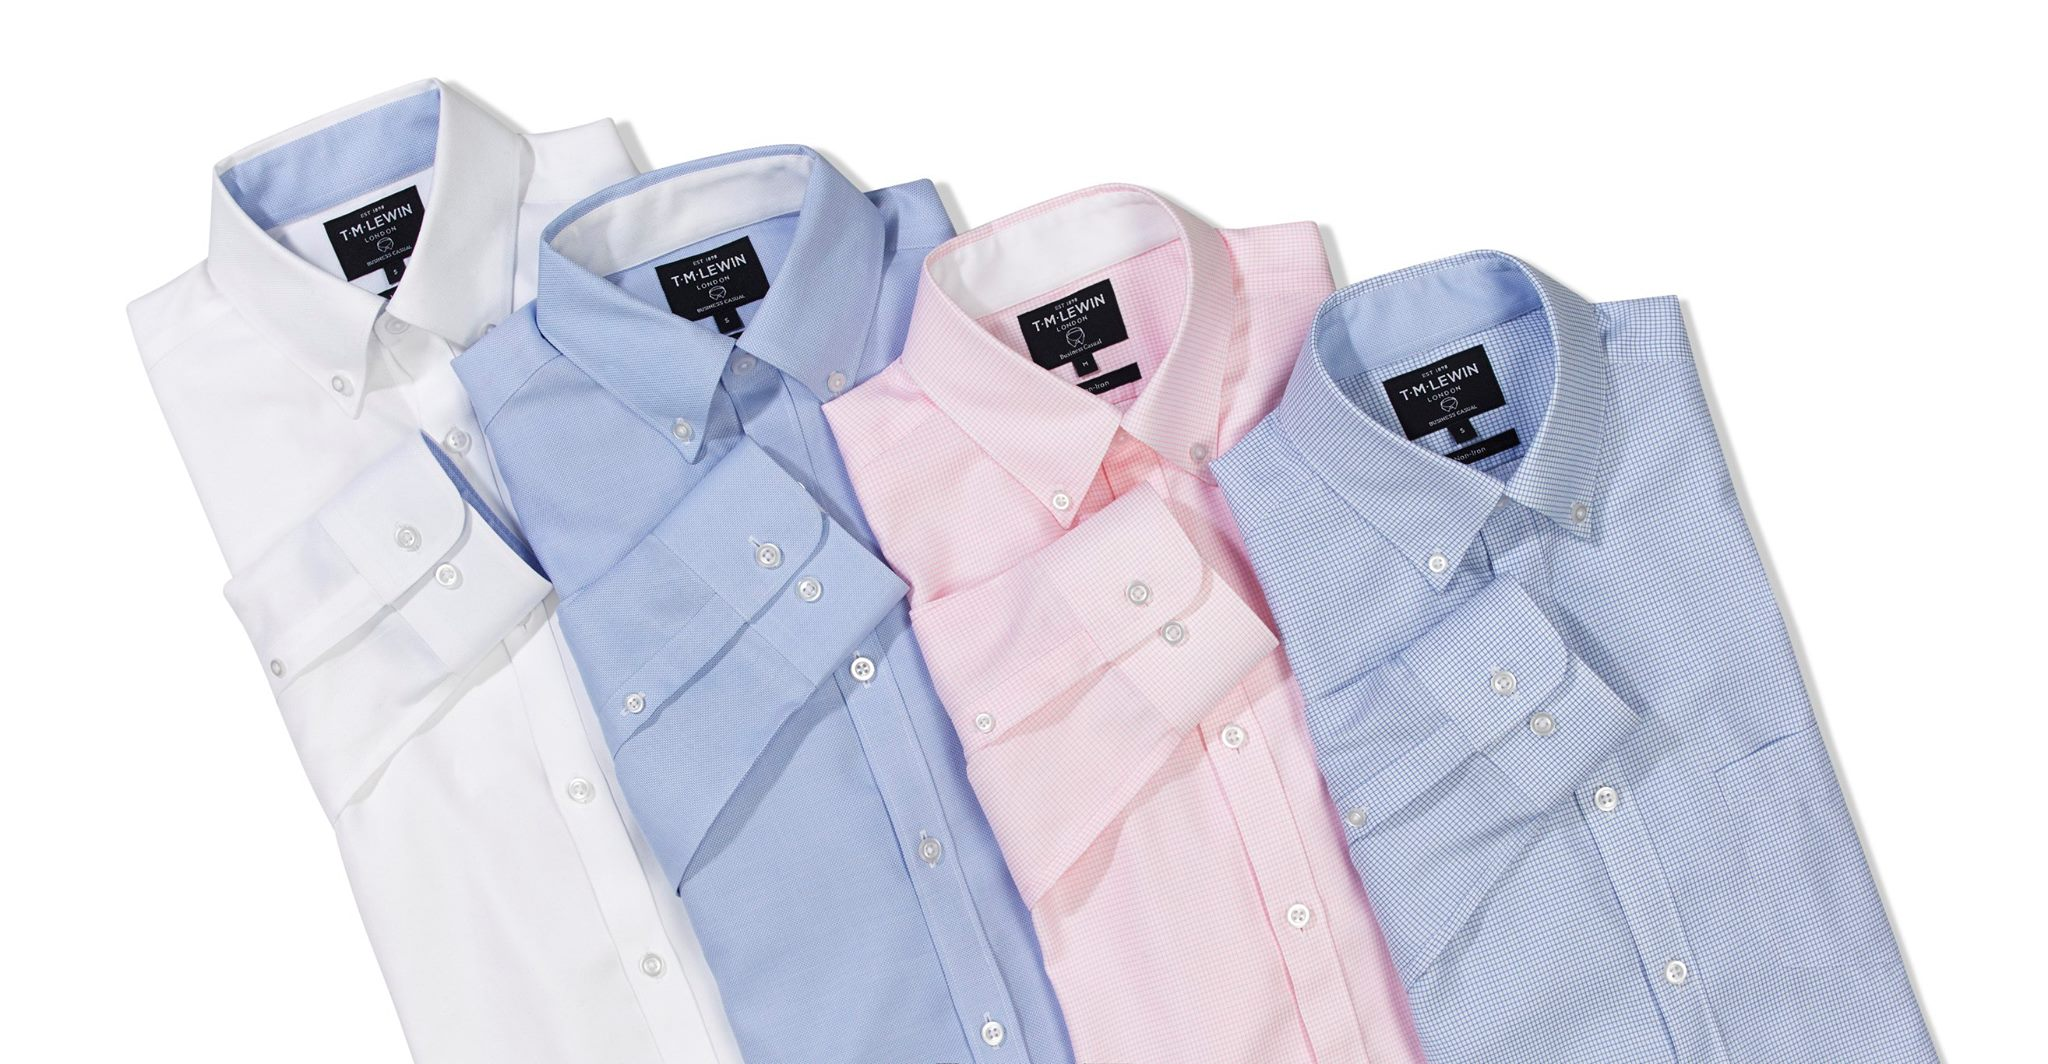 TM Lewin Shirts from $24. Clearance sale on now